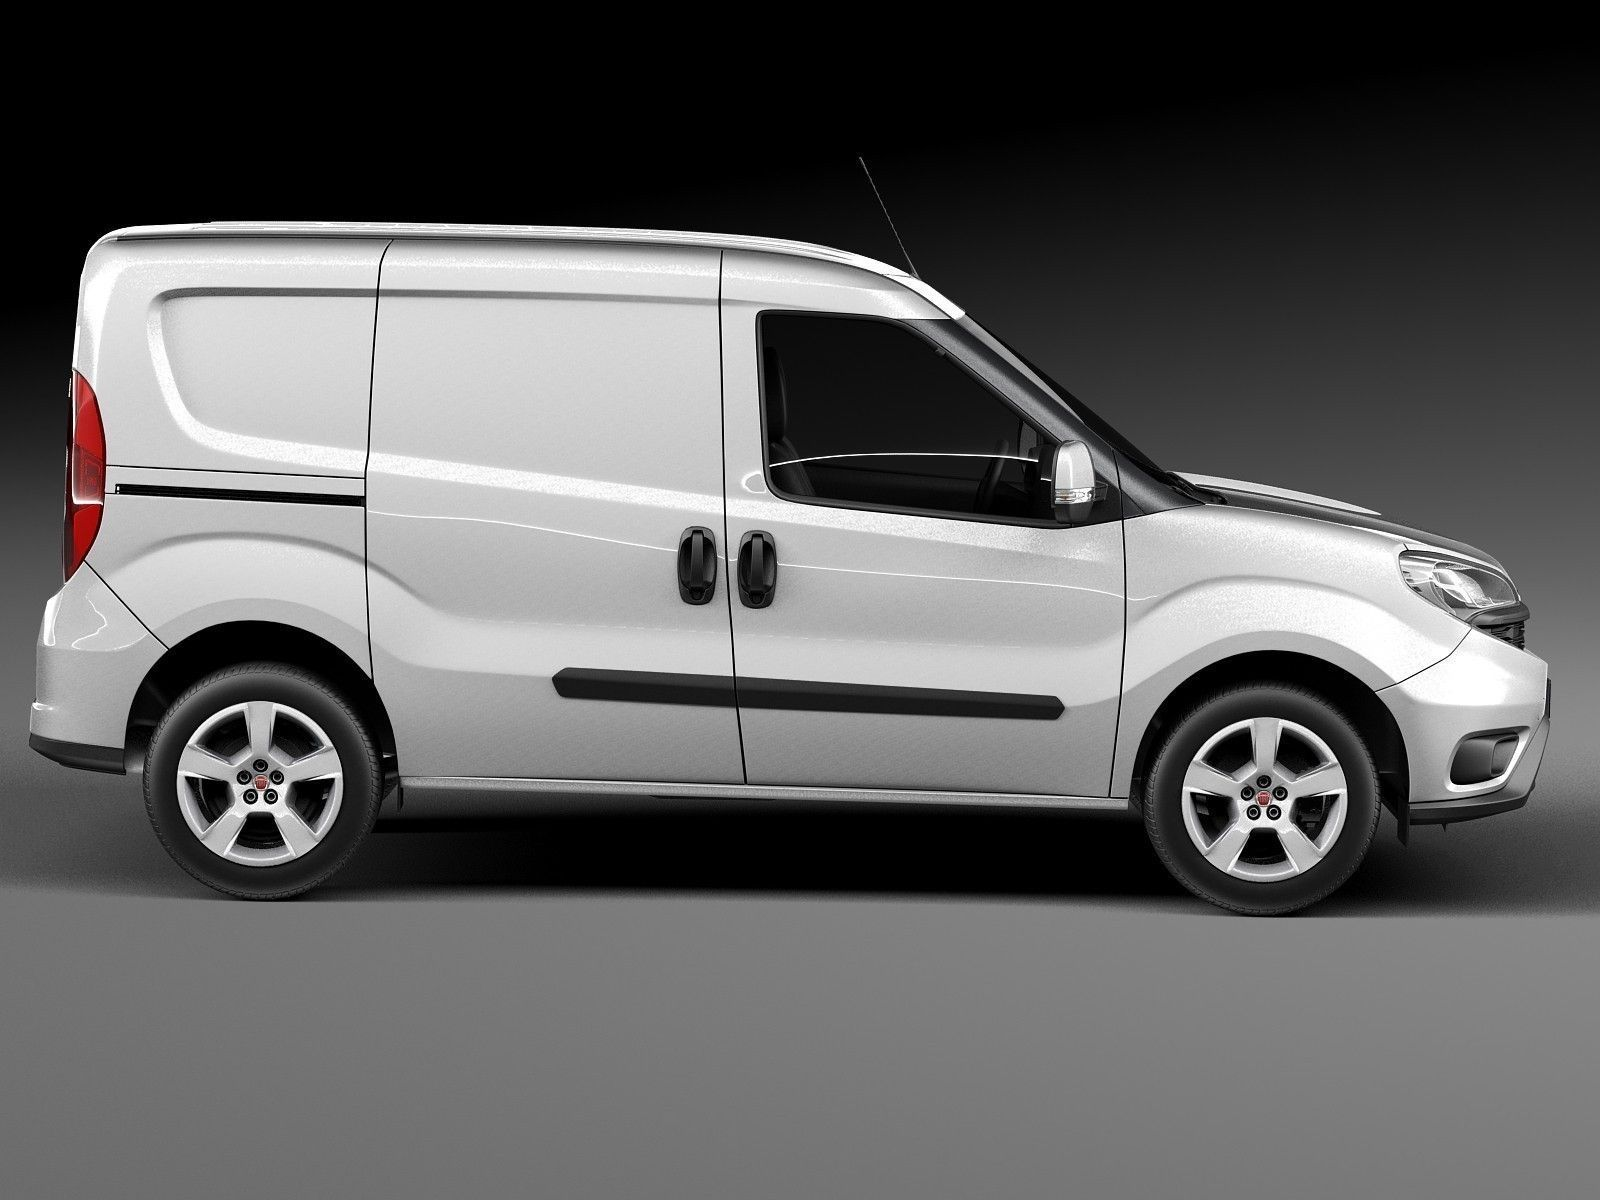 fiat doblo cargo 2015 3d model max obj 3ds fbx c4d lwo lw lws. Black Bedroom Furniture Sets. Home Design Ideas